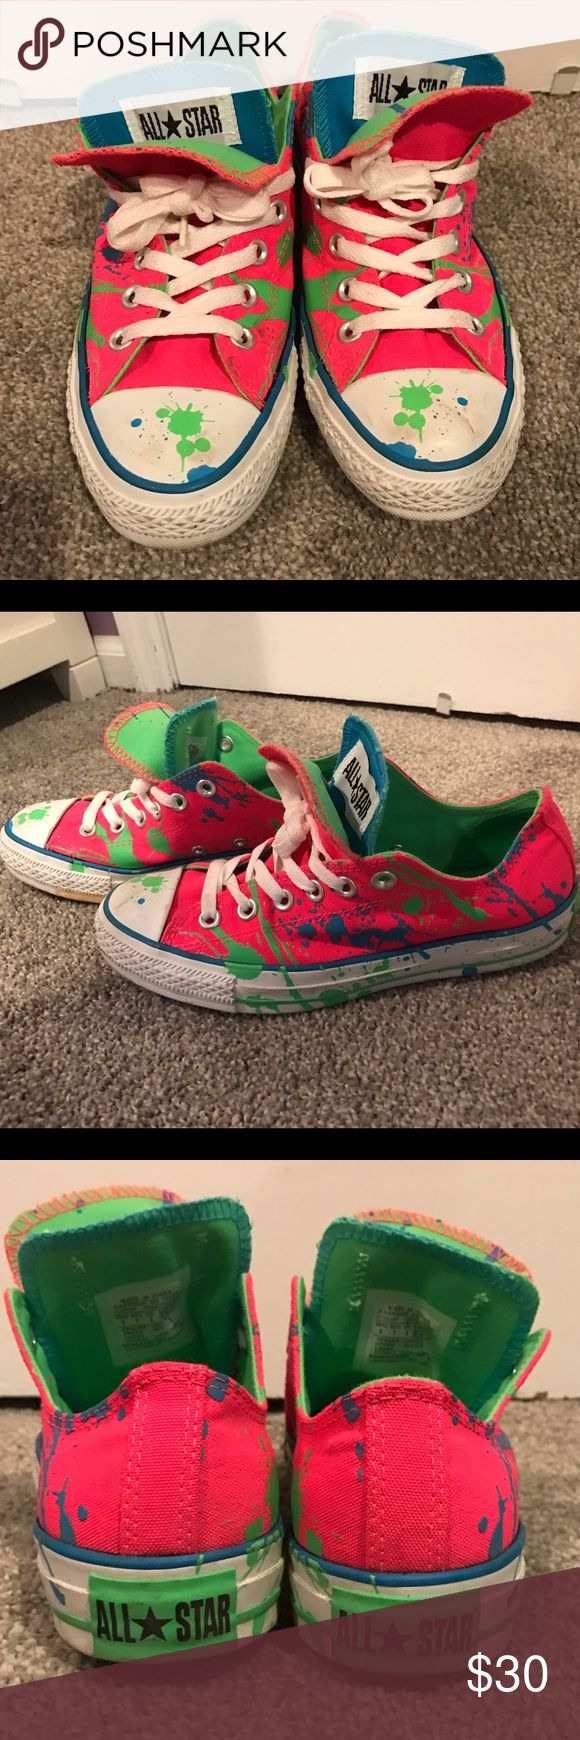 Double tongue neon Converse, size 7 Double tongue neon splatter paint Converse, size 7. Converse Shoes Sneakers